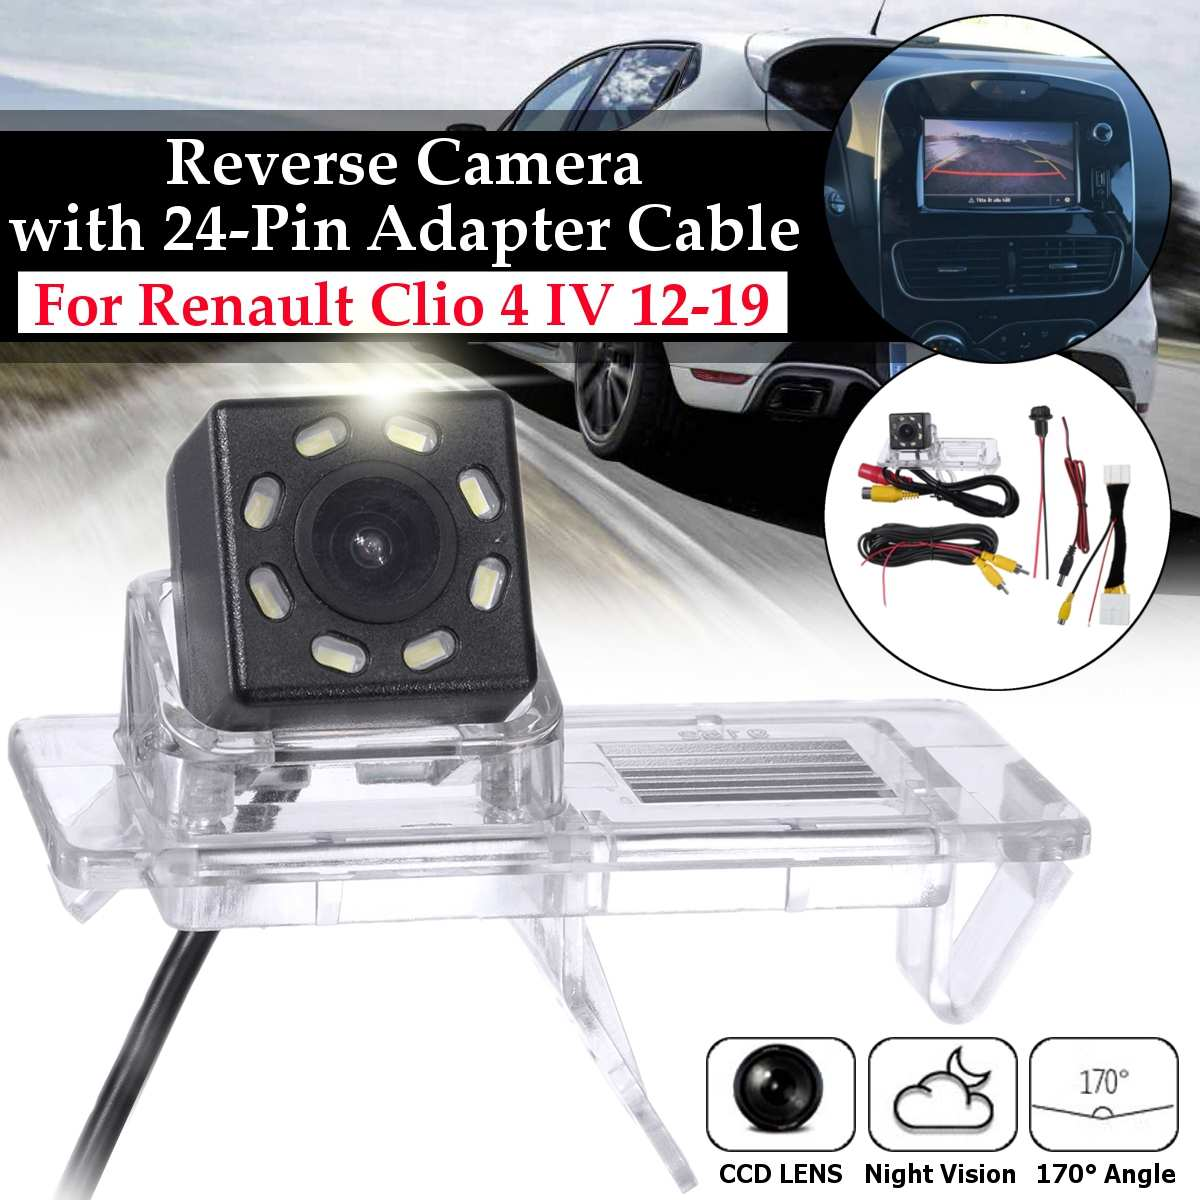 Car Rear View Camera 170 Degree Parking Reverse Camera With 24Pin Adapter Cable For Renault Clio 4 IV 2012-2019 8LED Light